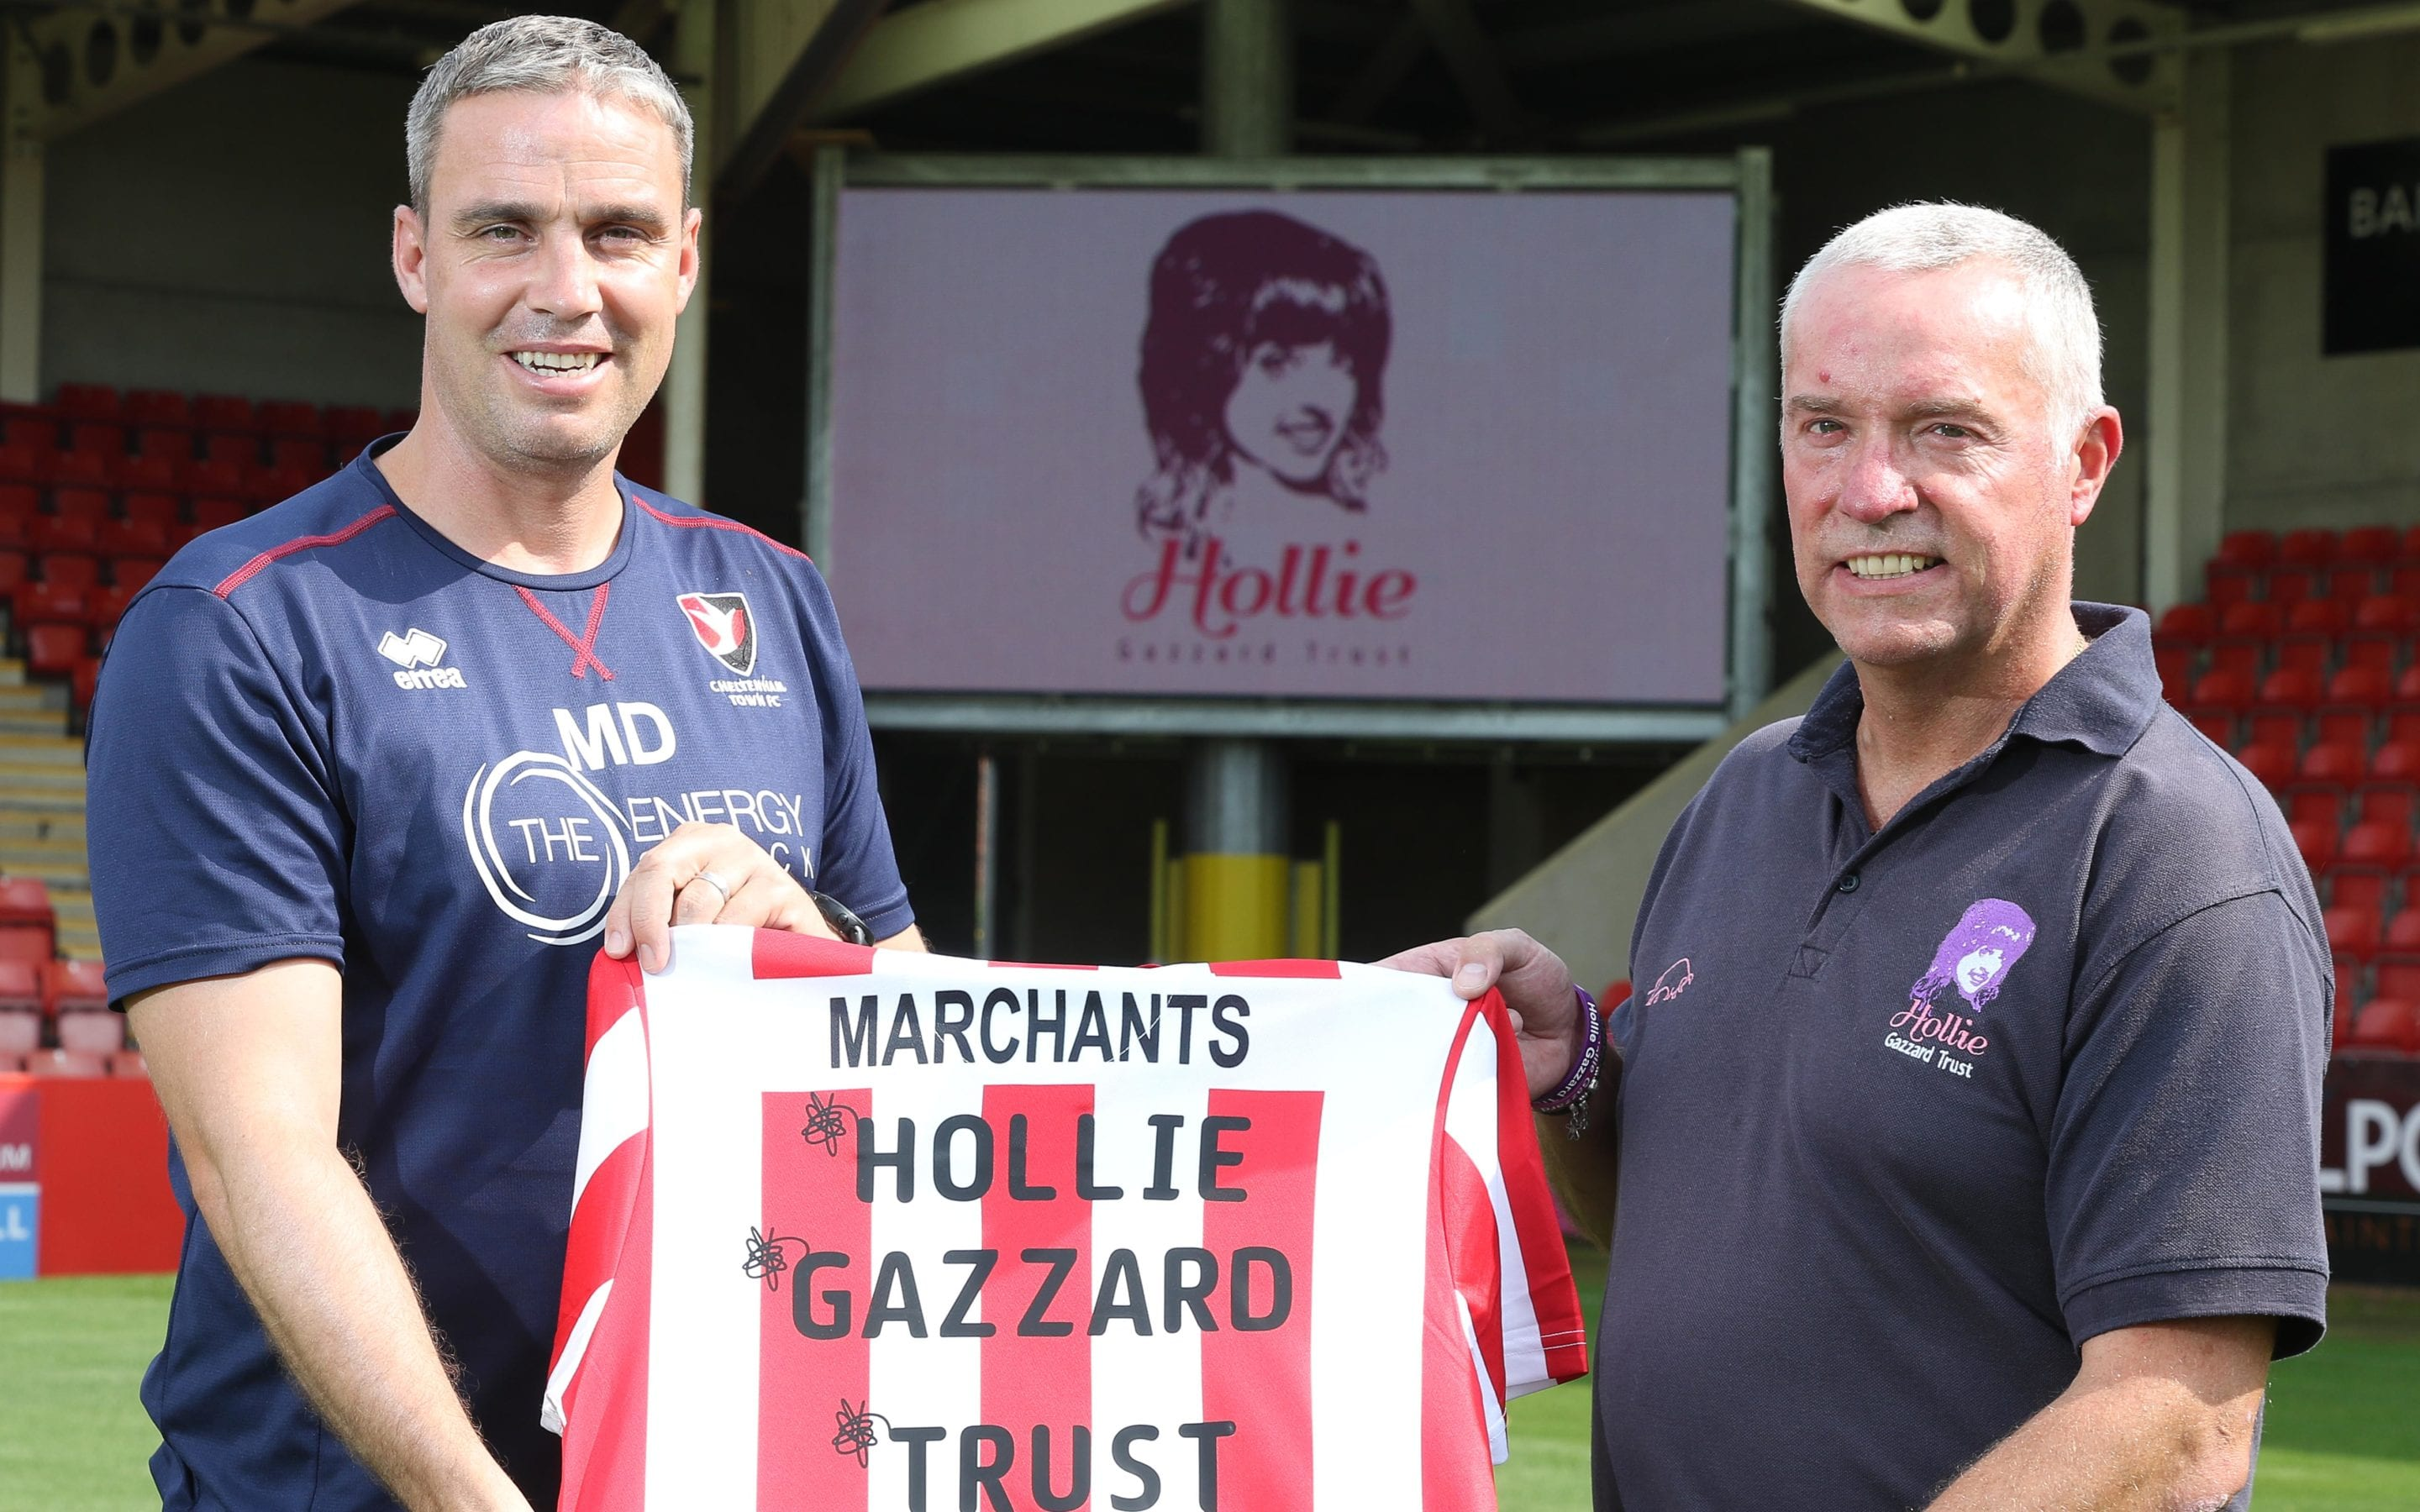 Hollie Gazzard Trust Named Cheltenham Town FC Charity of the Year